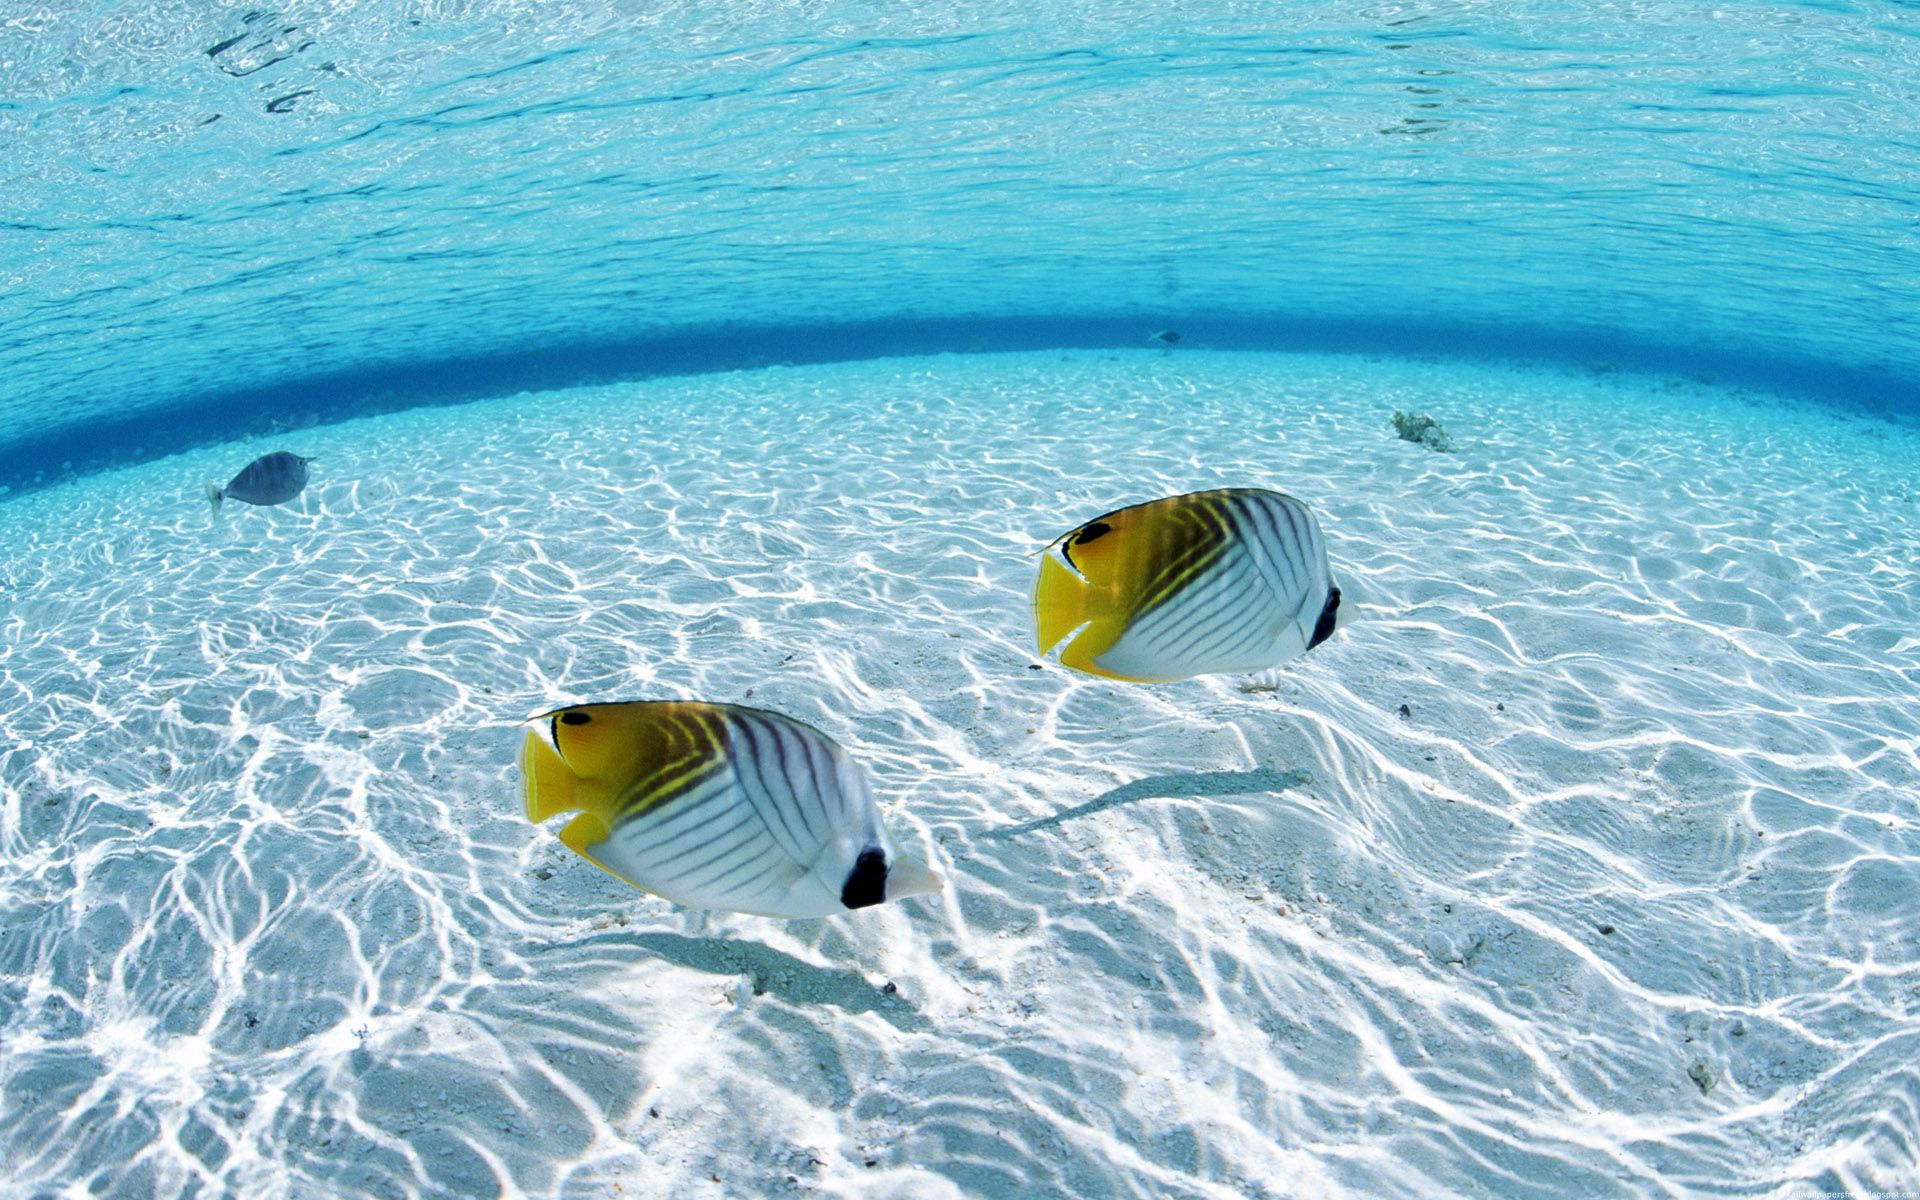 Underwater Wallpaper Image HD Background